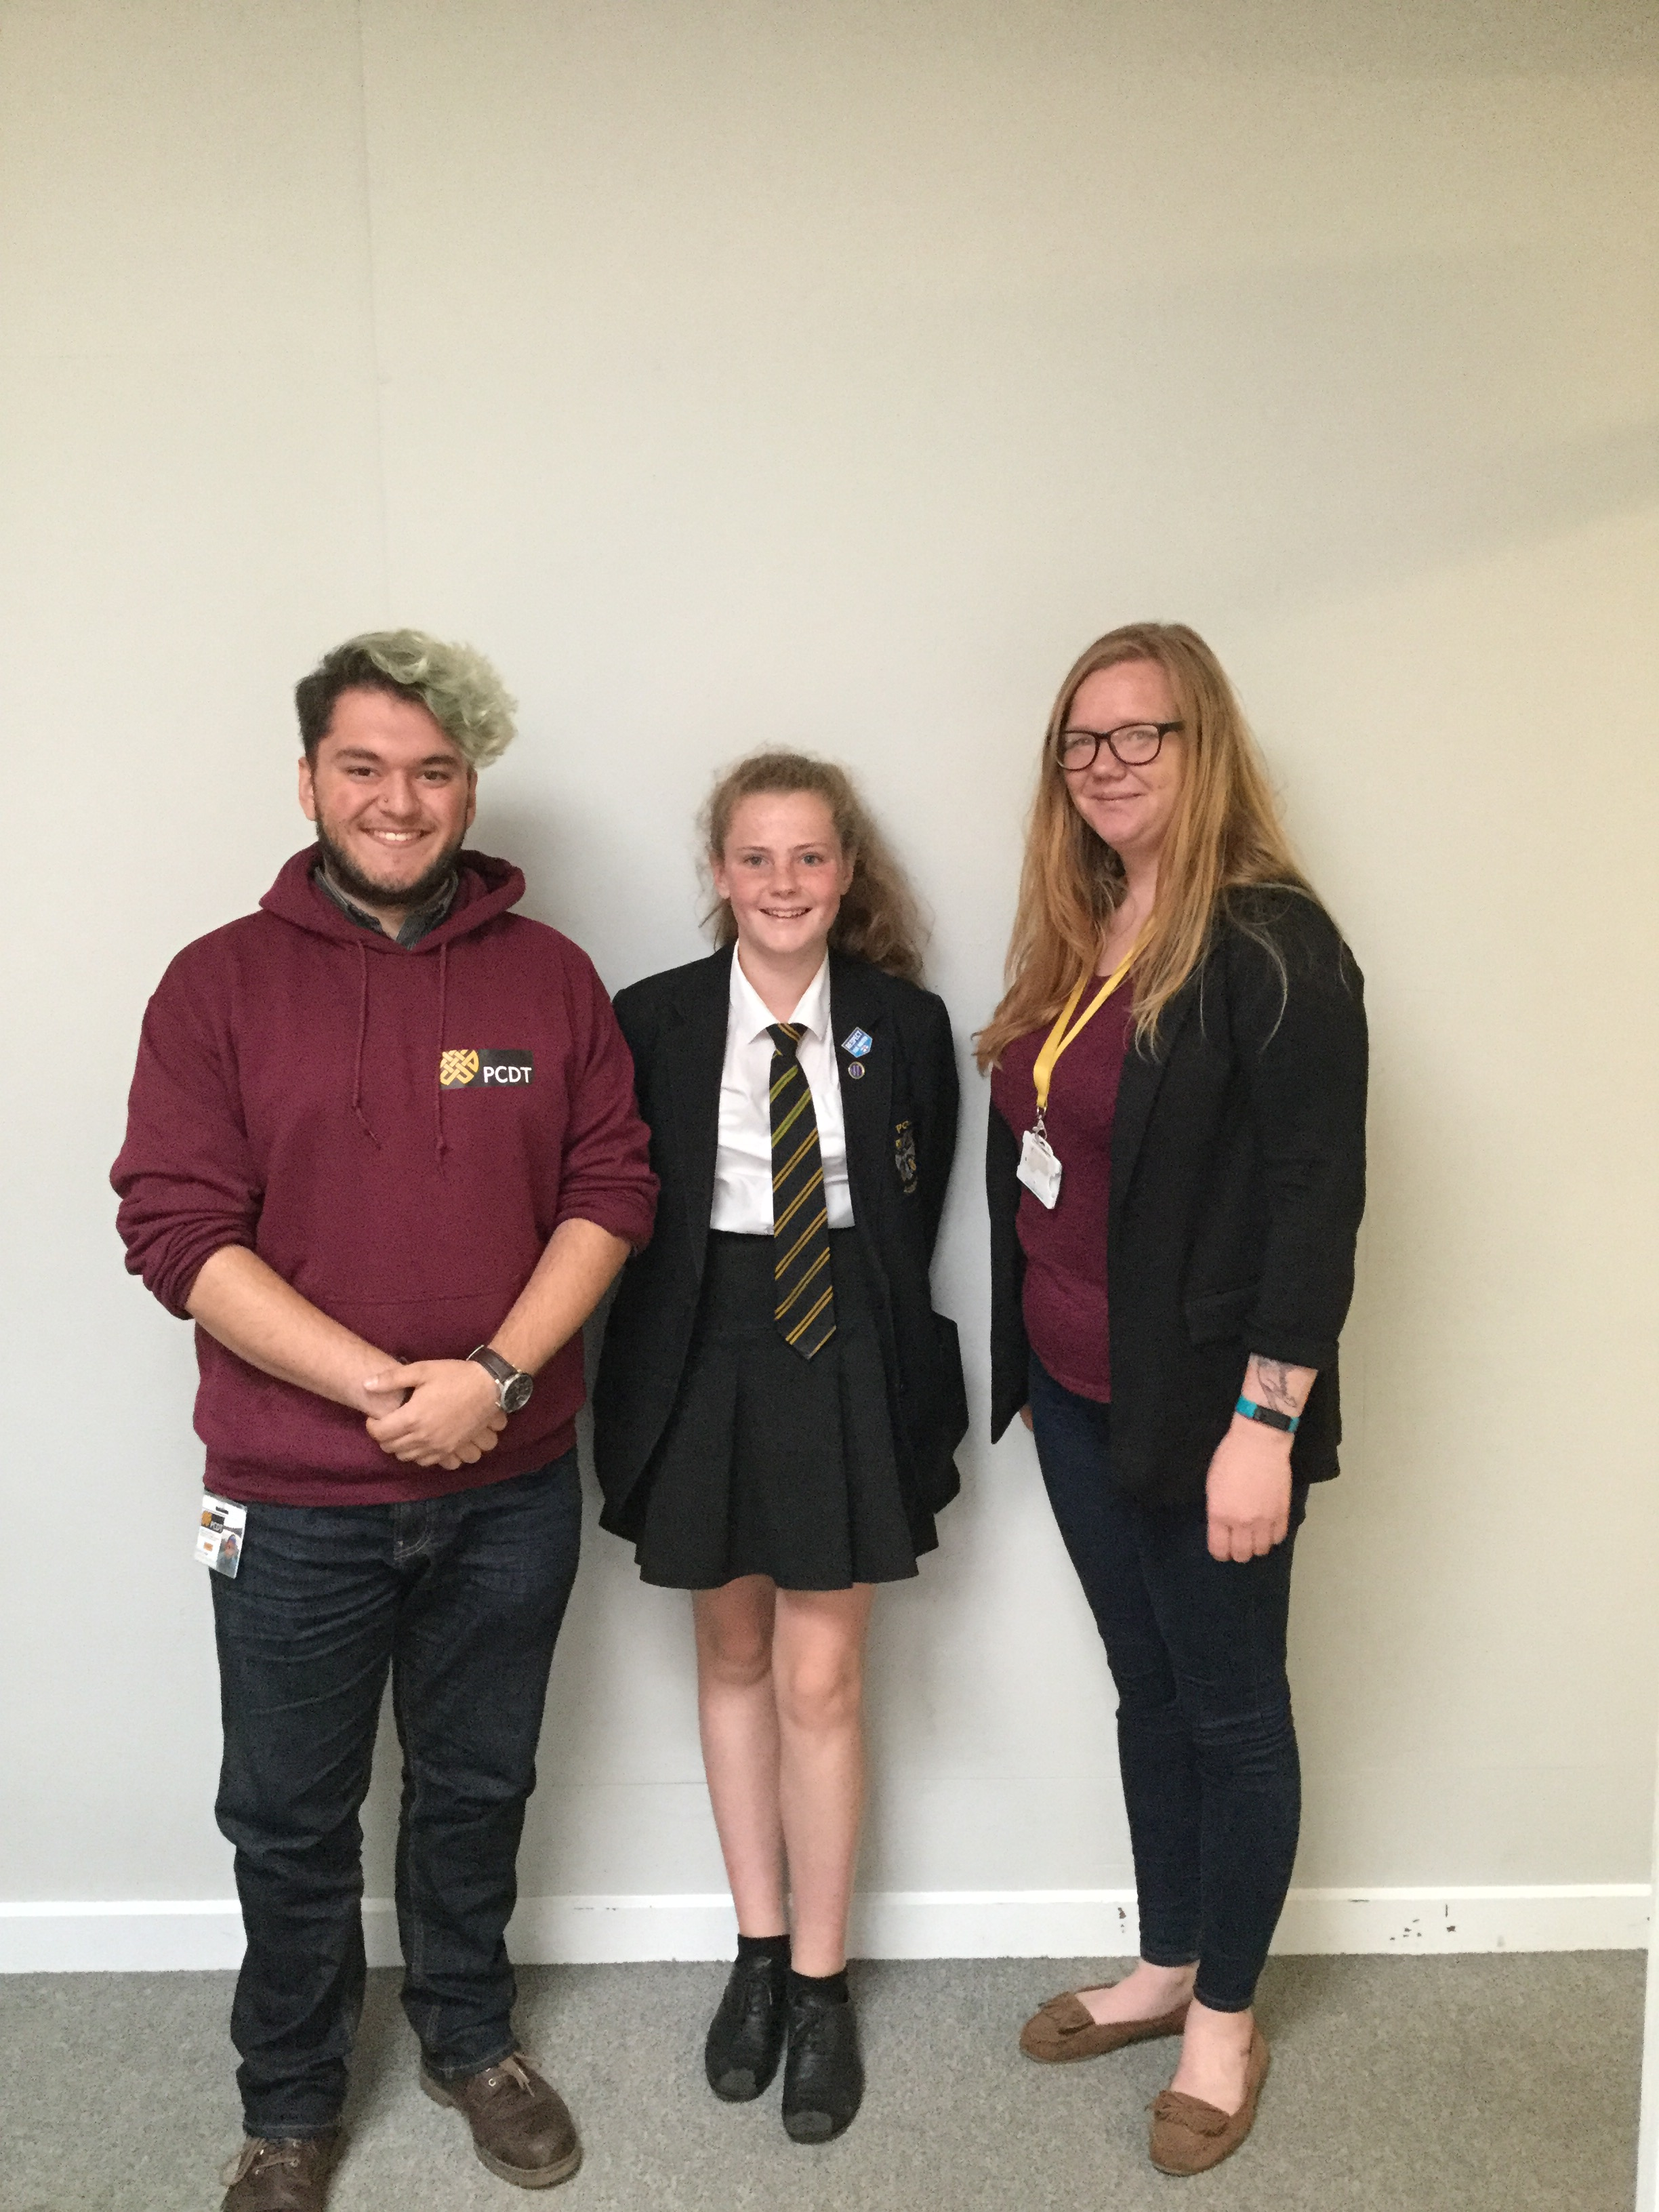 Milly with Kate McArthur and Reece Foster.